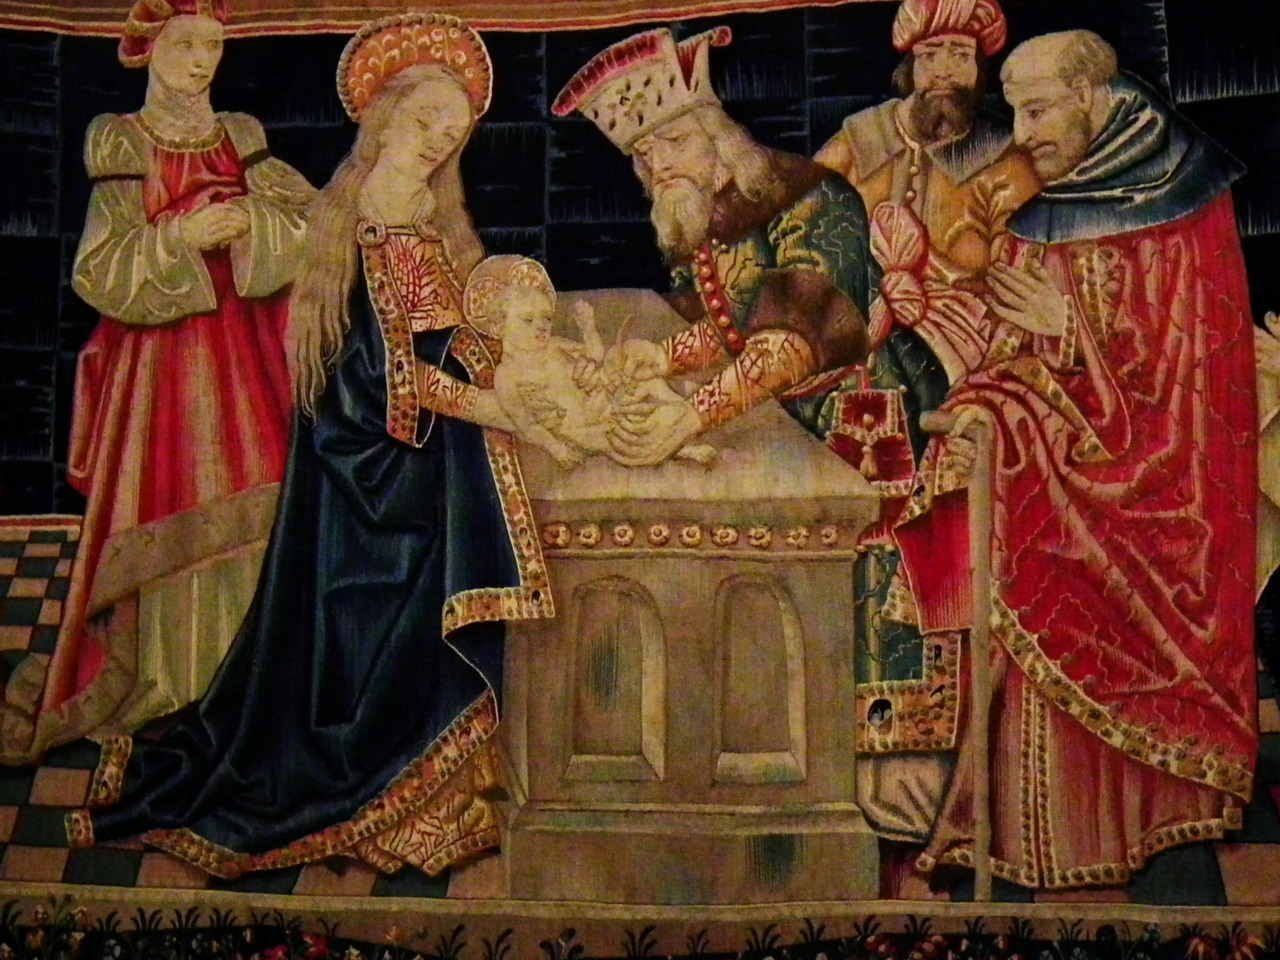 The Feast of the Circumcision of Christ- January 1st, Tridentine calendar   is a Christian celebration of the circumcision of Jesus in accordance with Jewish tradition, eight days (according to the Semitic and southern European calculation of intervals of days) after his birth, the occasion on which the child was formally given his name. The circumcision of Jesus has traditionally been seen as the first time the blood of Christ was shed, and thus the beginning of the process of the redemption of man, and a demonstration that Christ was fully human, and of his obedience to Biblical law. Celebrated in the Eastern Orthodox and Catholic Churches.